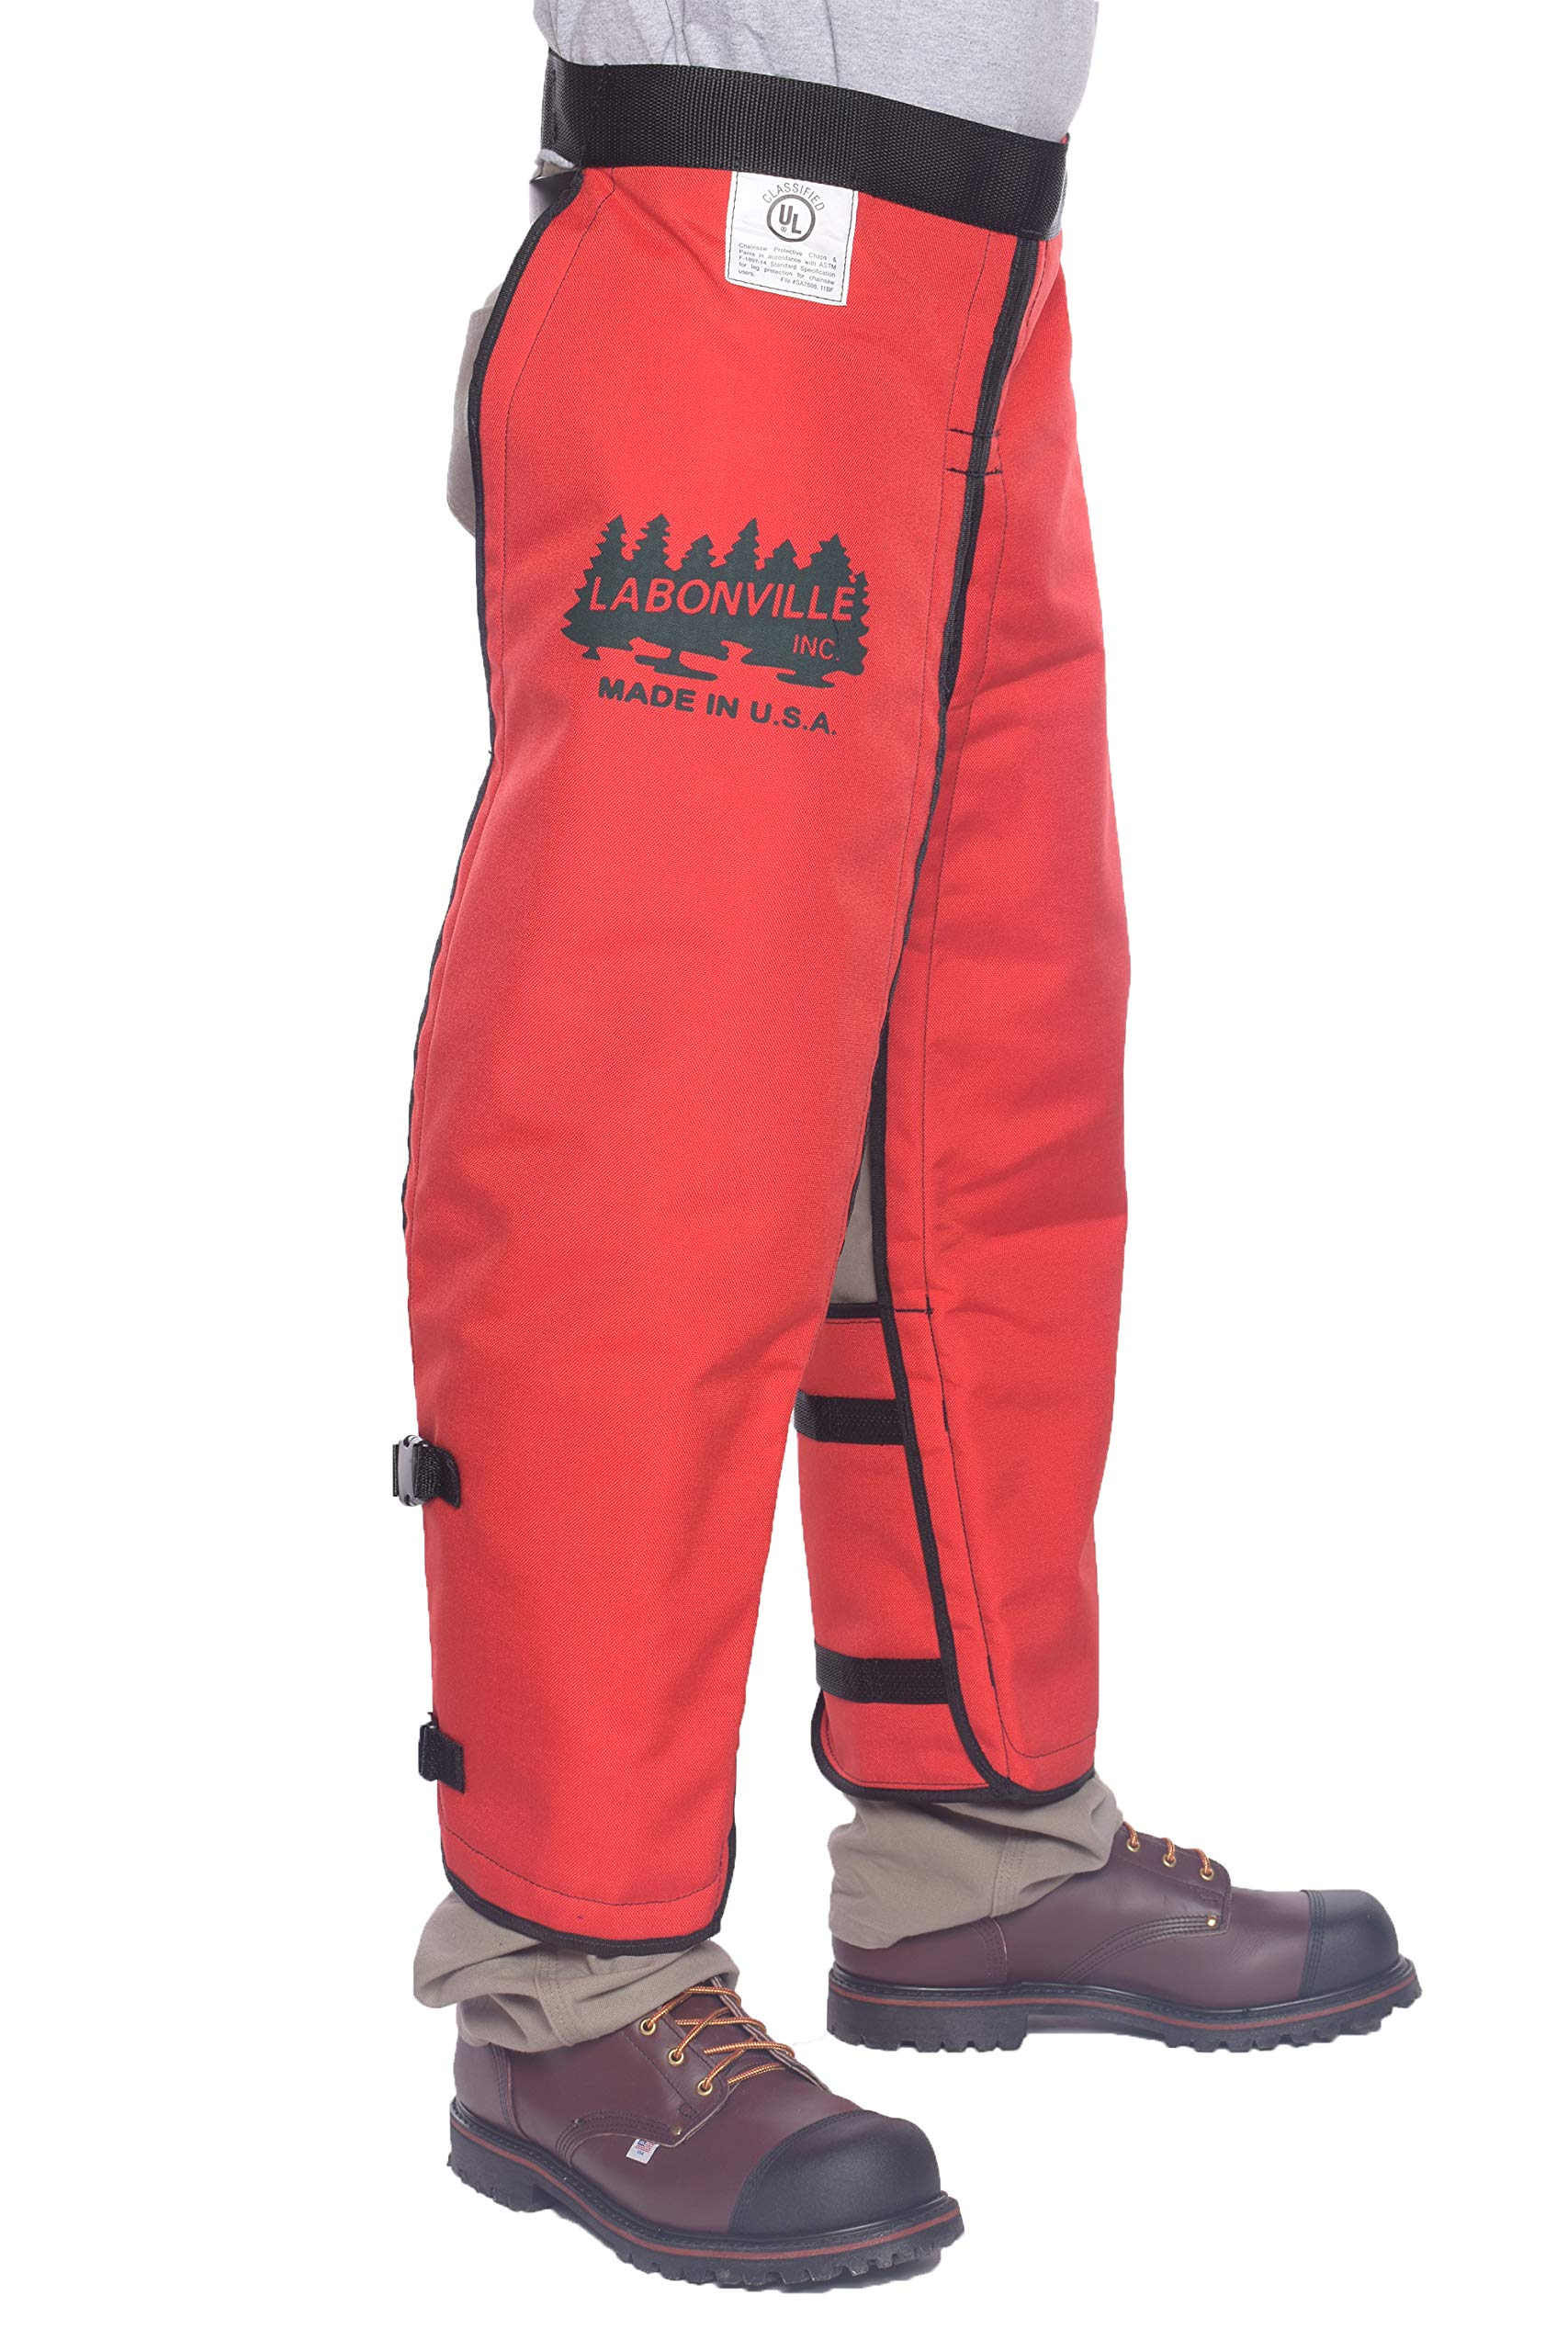 LABONVILLE Full Wrap Chainsaw Chaps - Overall Length 40'' - Made in USA - Orange